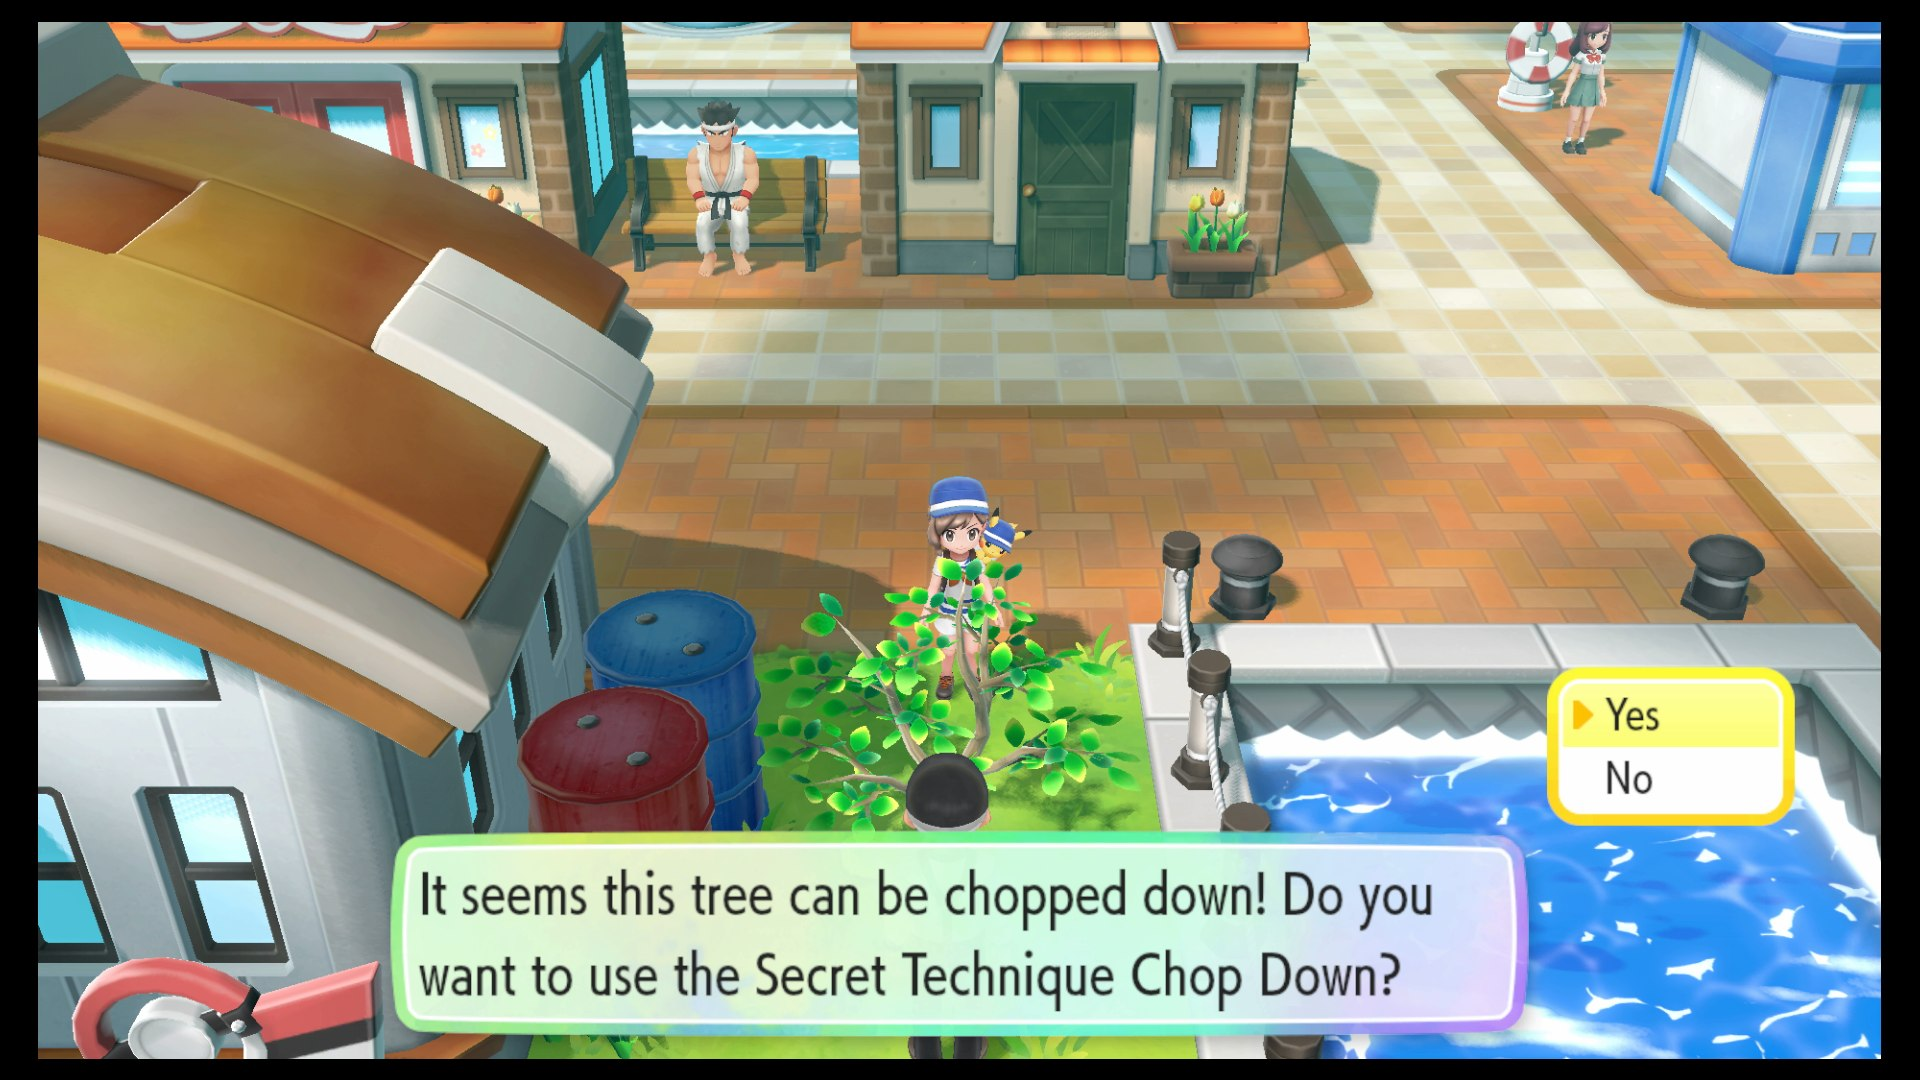 How To Chop Down Trees In Pokemon Let S Go Pikachu And Eevee Usgamer